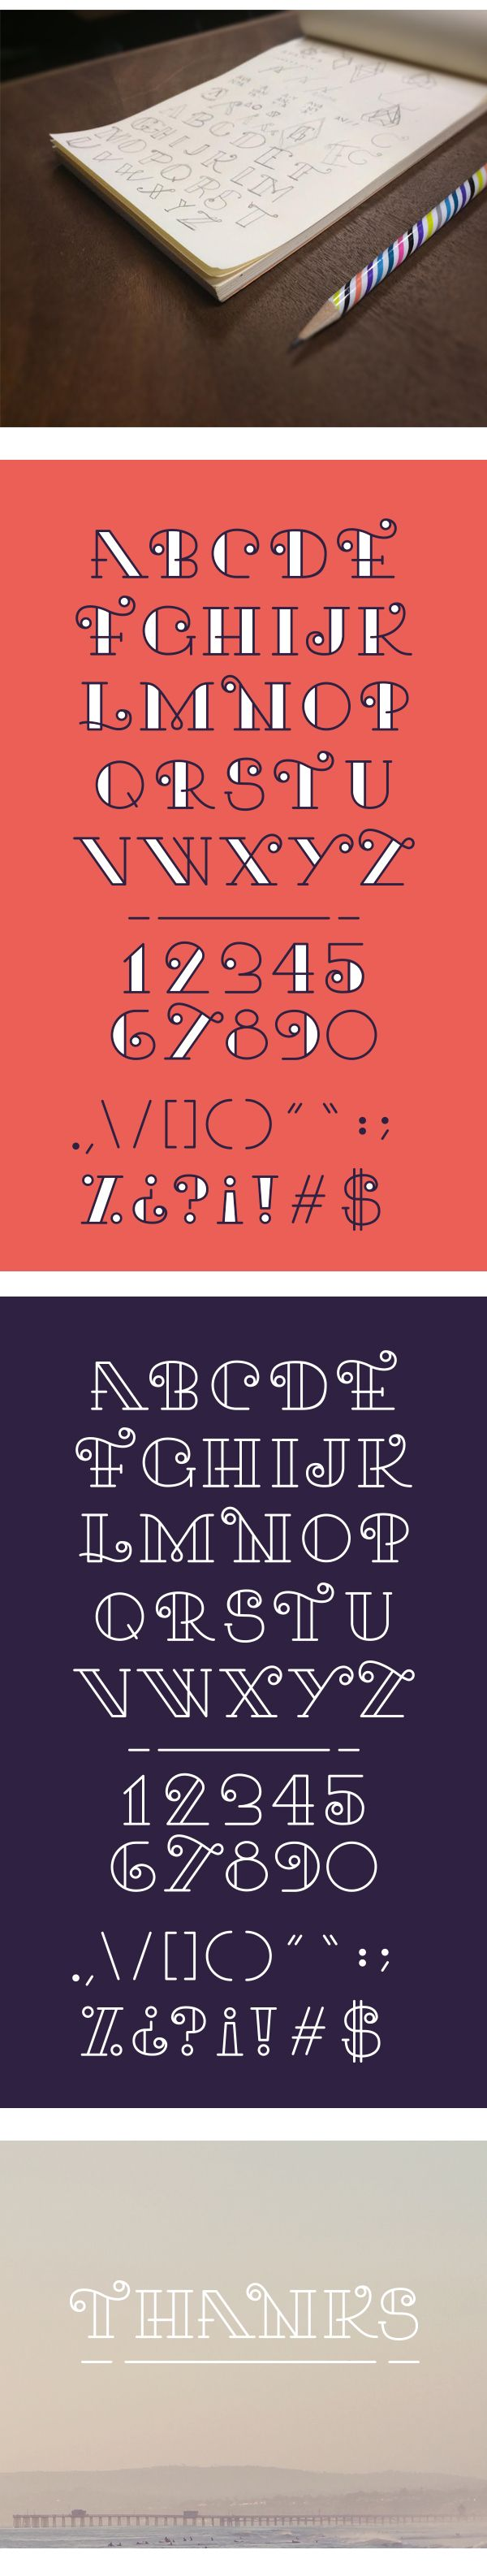 """My first dive into typography. This typeface was inspired from 55 Hi's """"EFF typefight""""."""